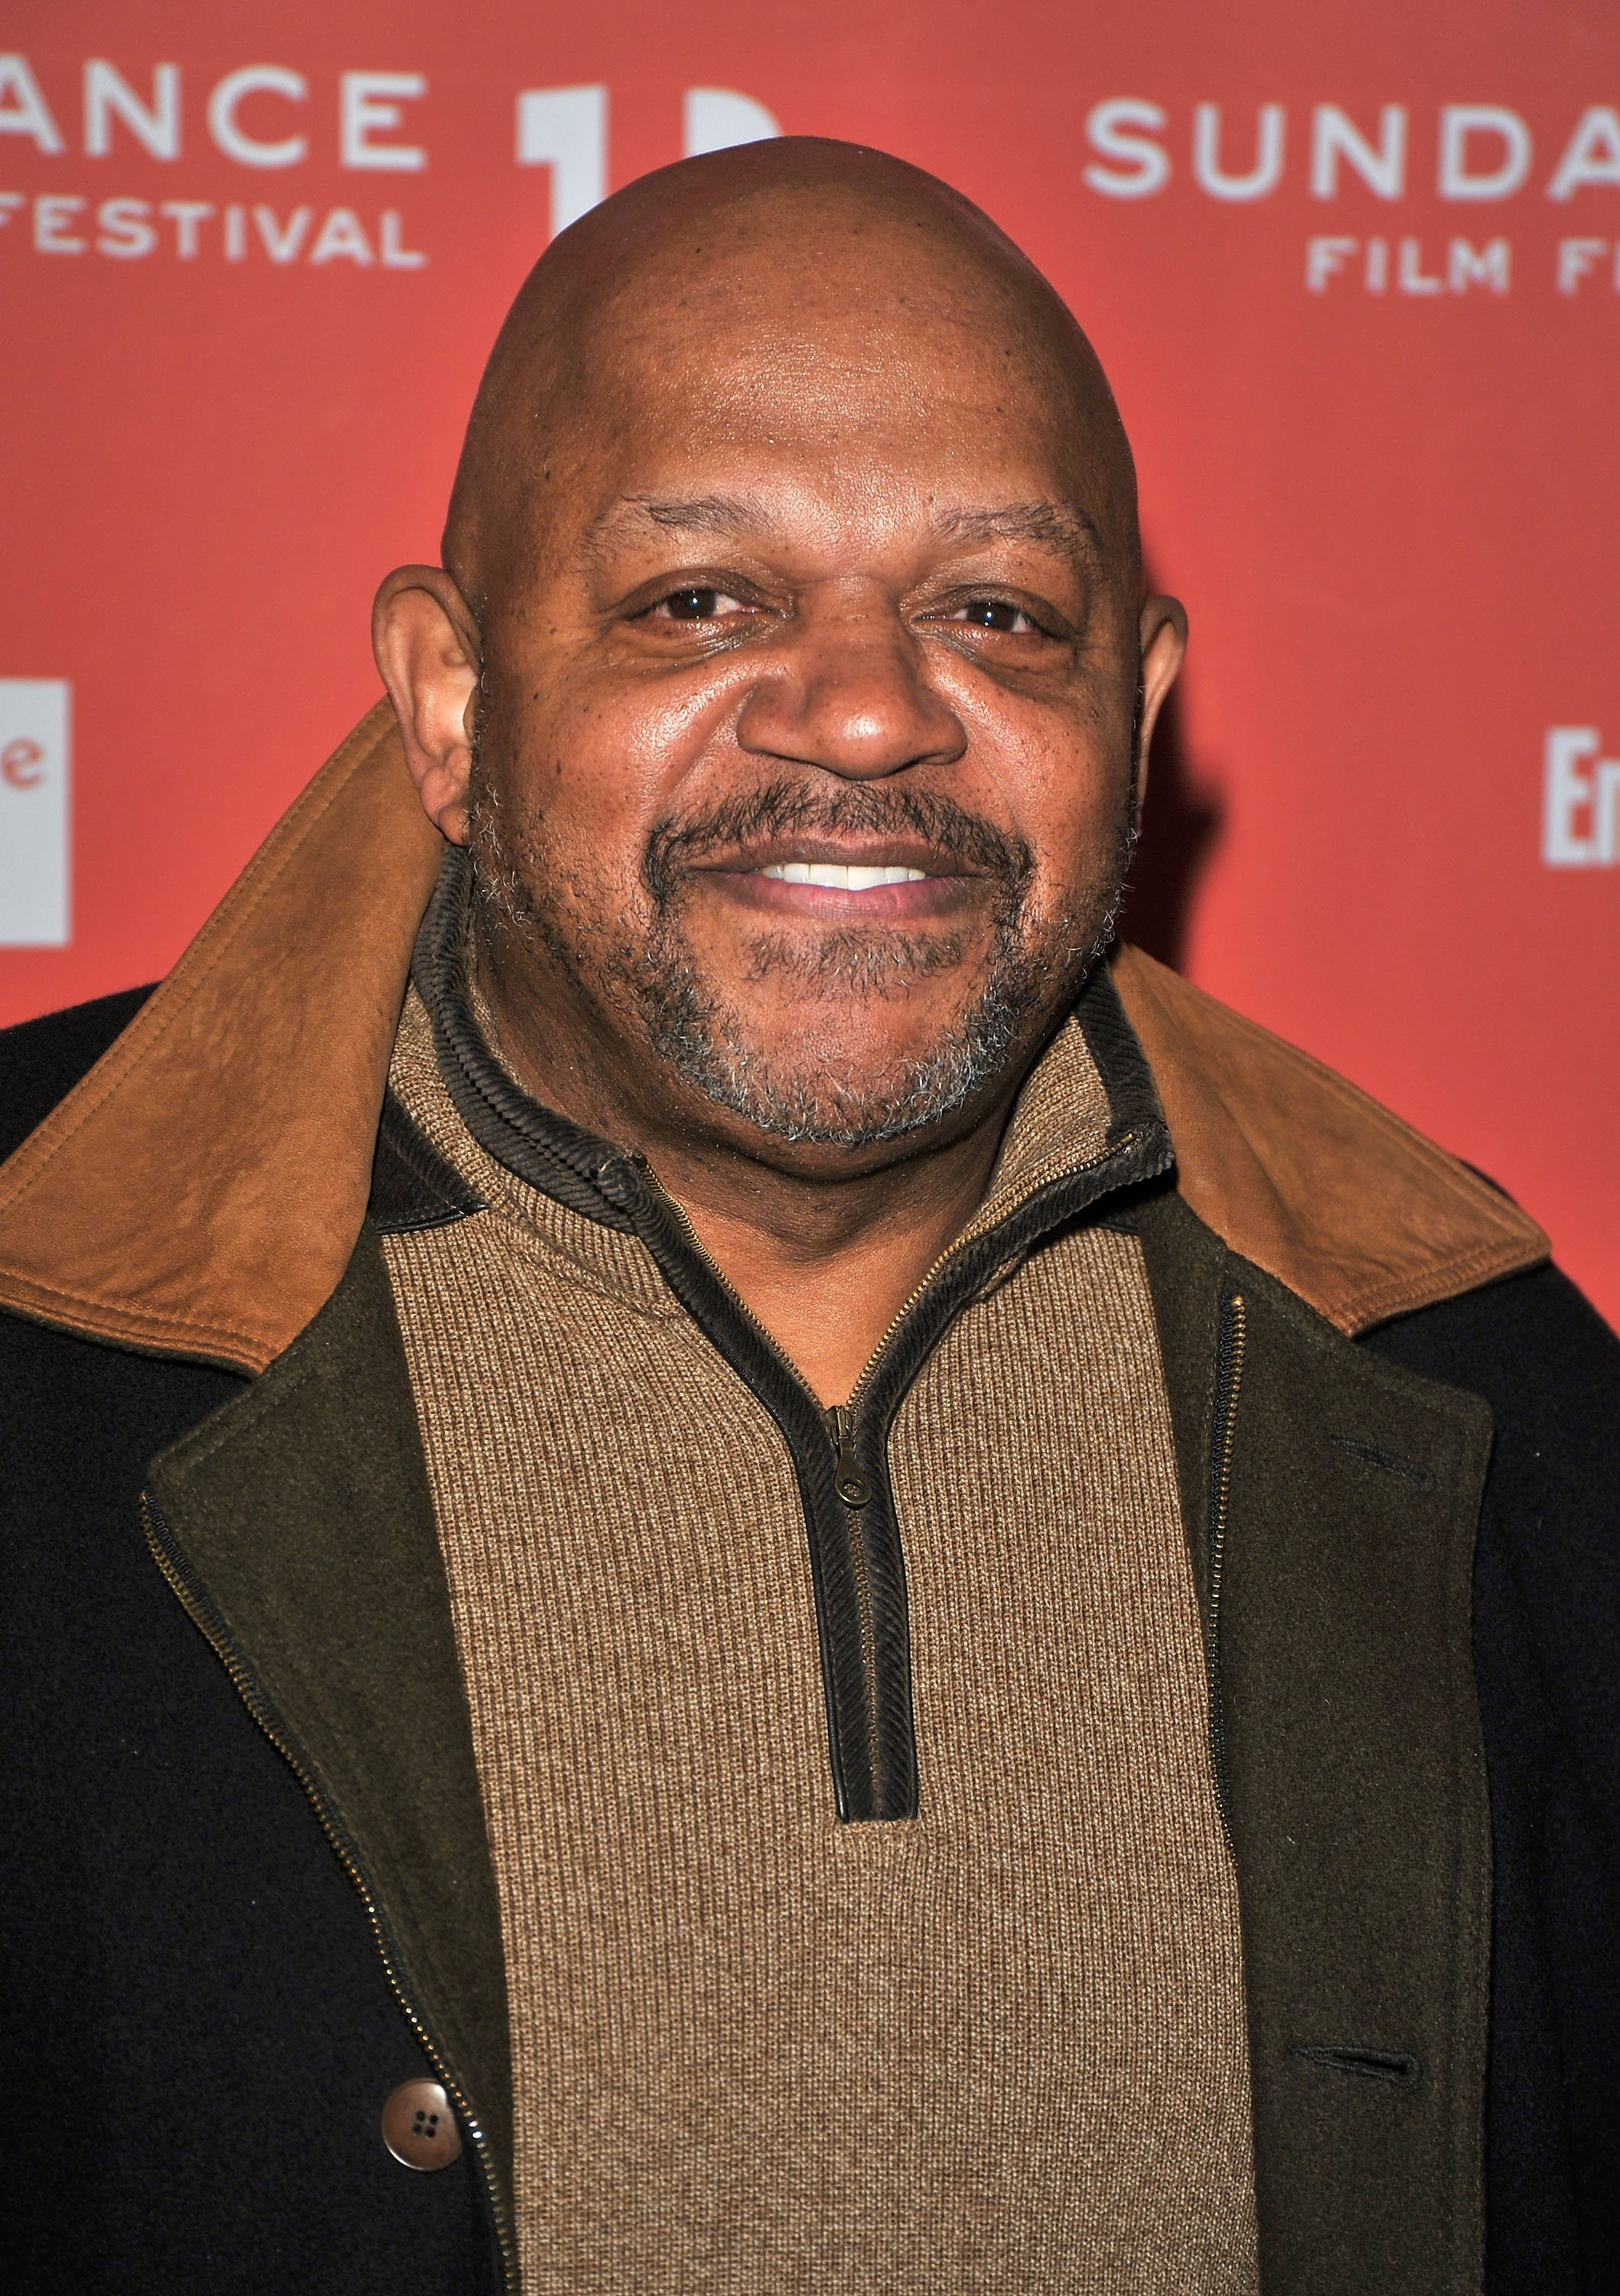 """Charles S. Dutton attends the """"LUV"""" premiere during the 2012 Sundance Film Festival on January 23, 2012 in Park City, Utah.   Photo: Getty Images"""